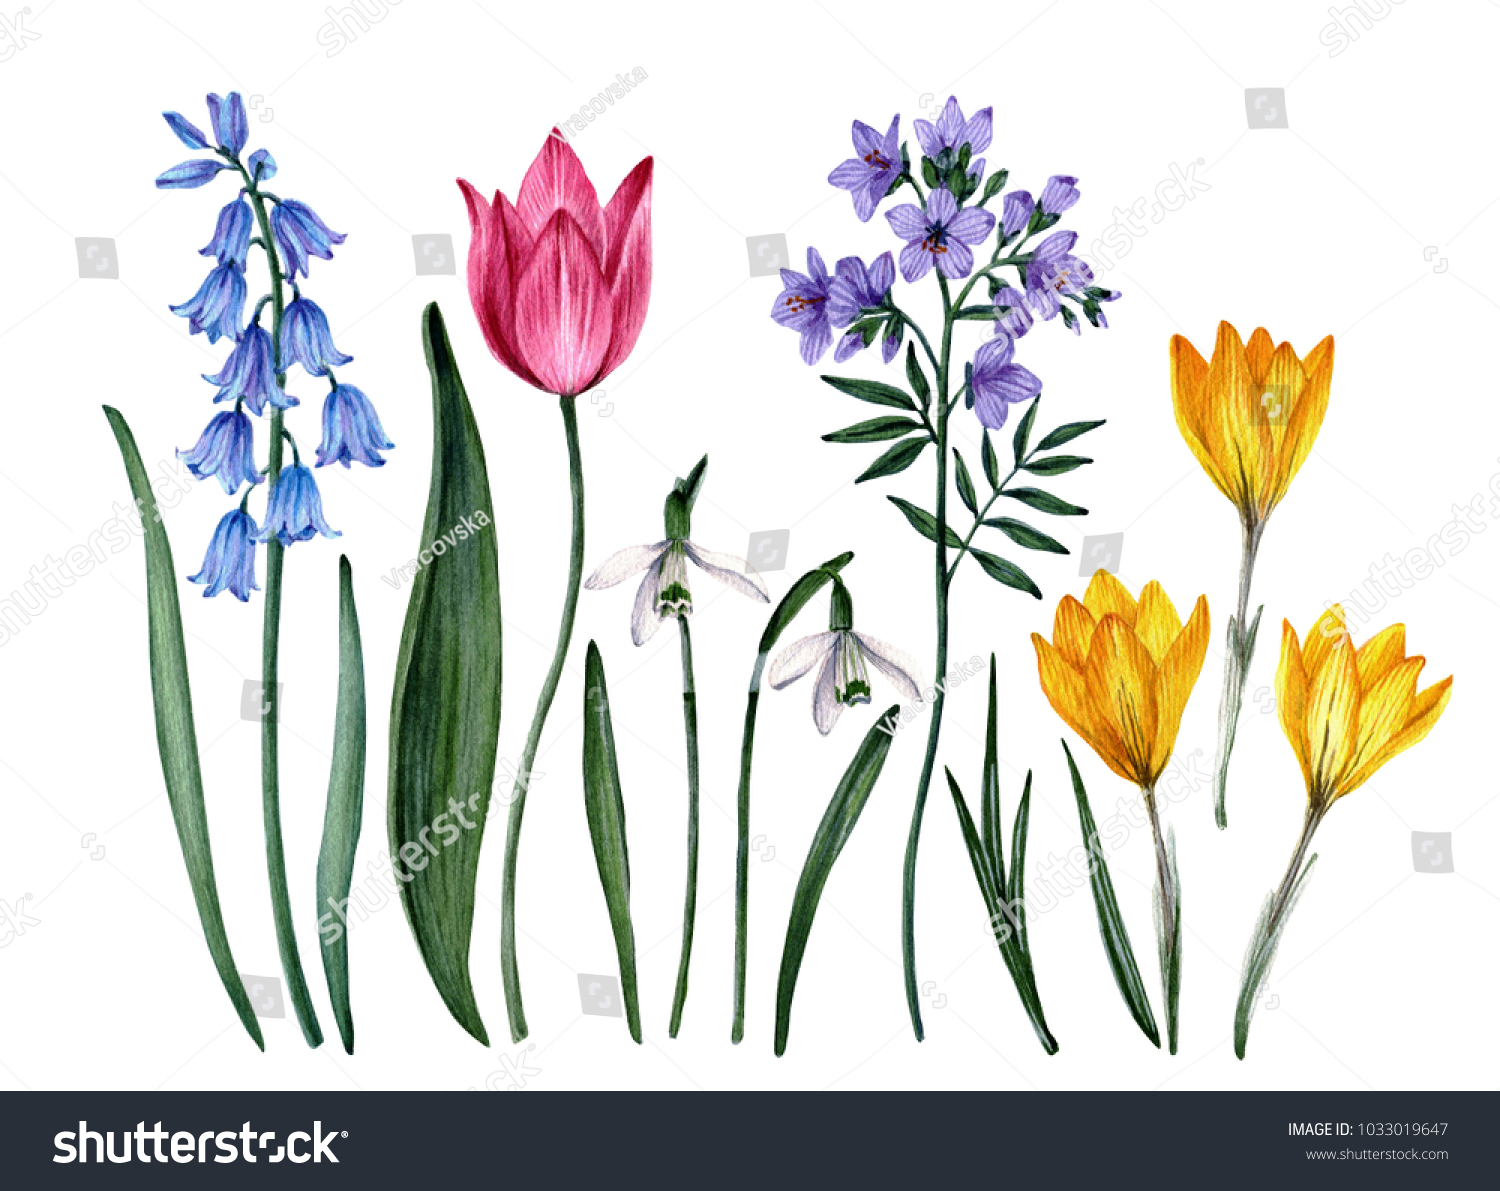 Watercolor Botanical Illustrations Spring Flowers Clip Stock